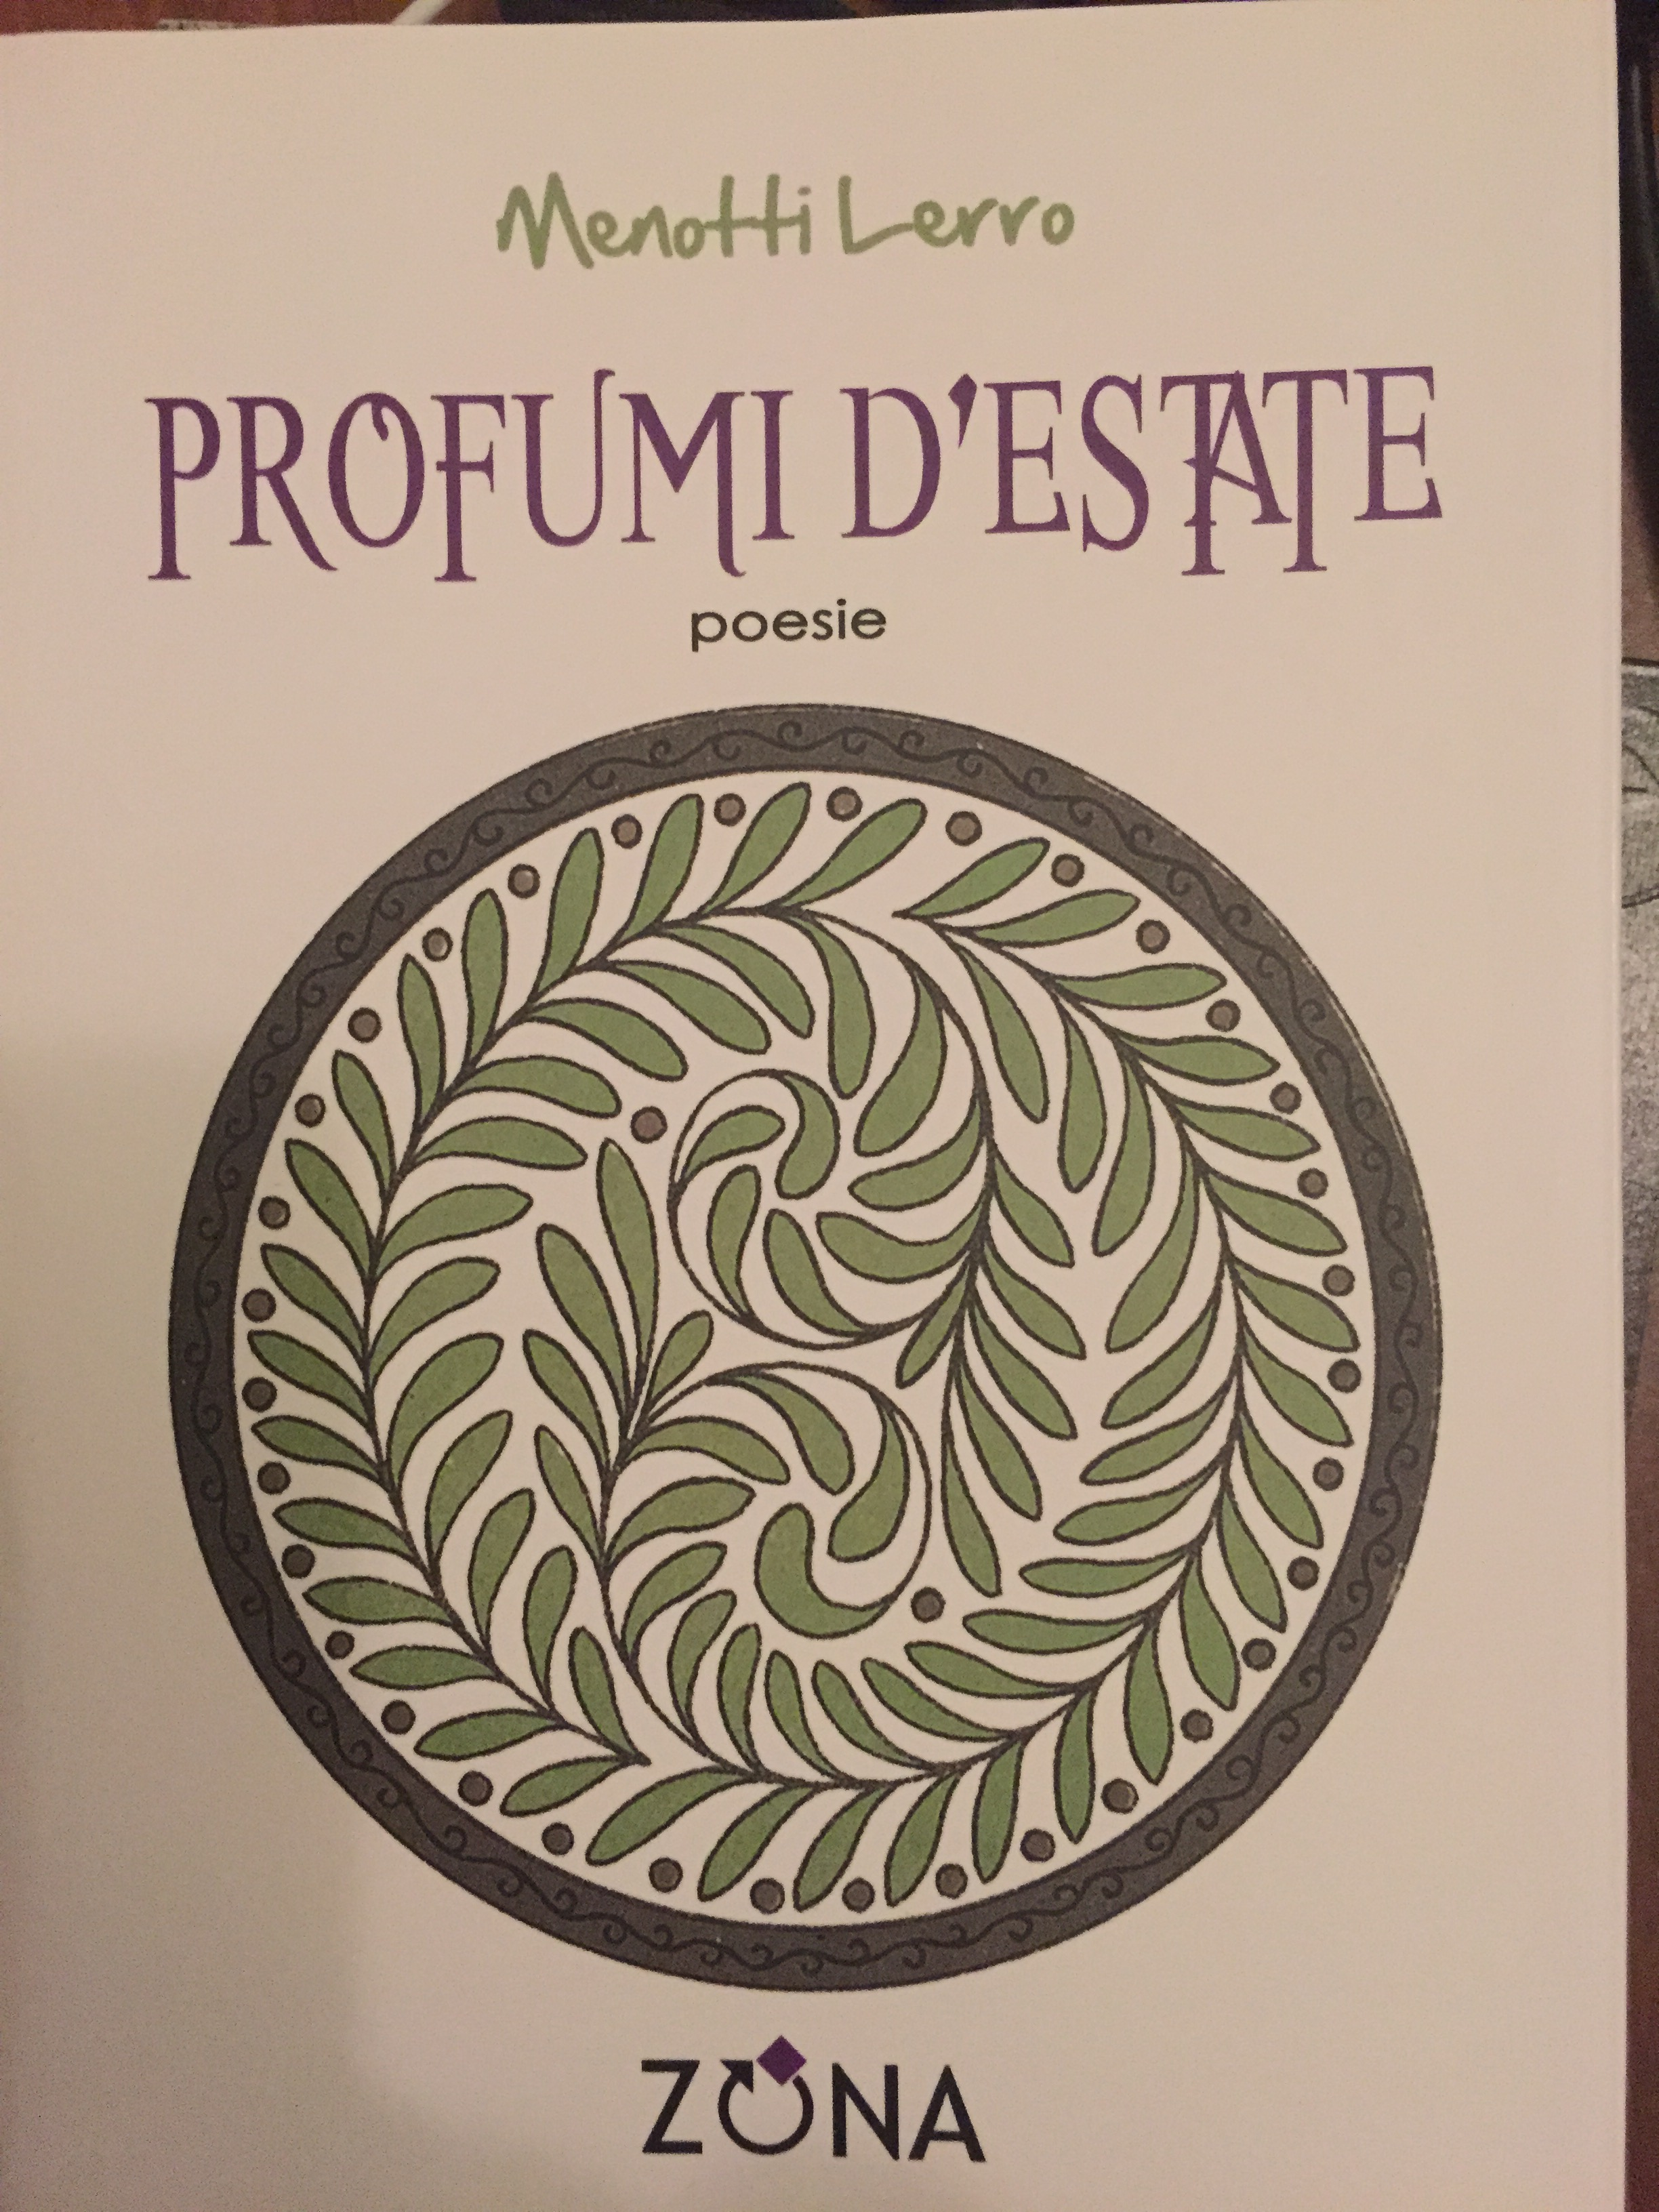 Profumi d'estate